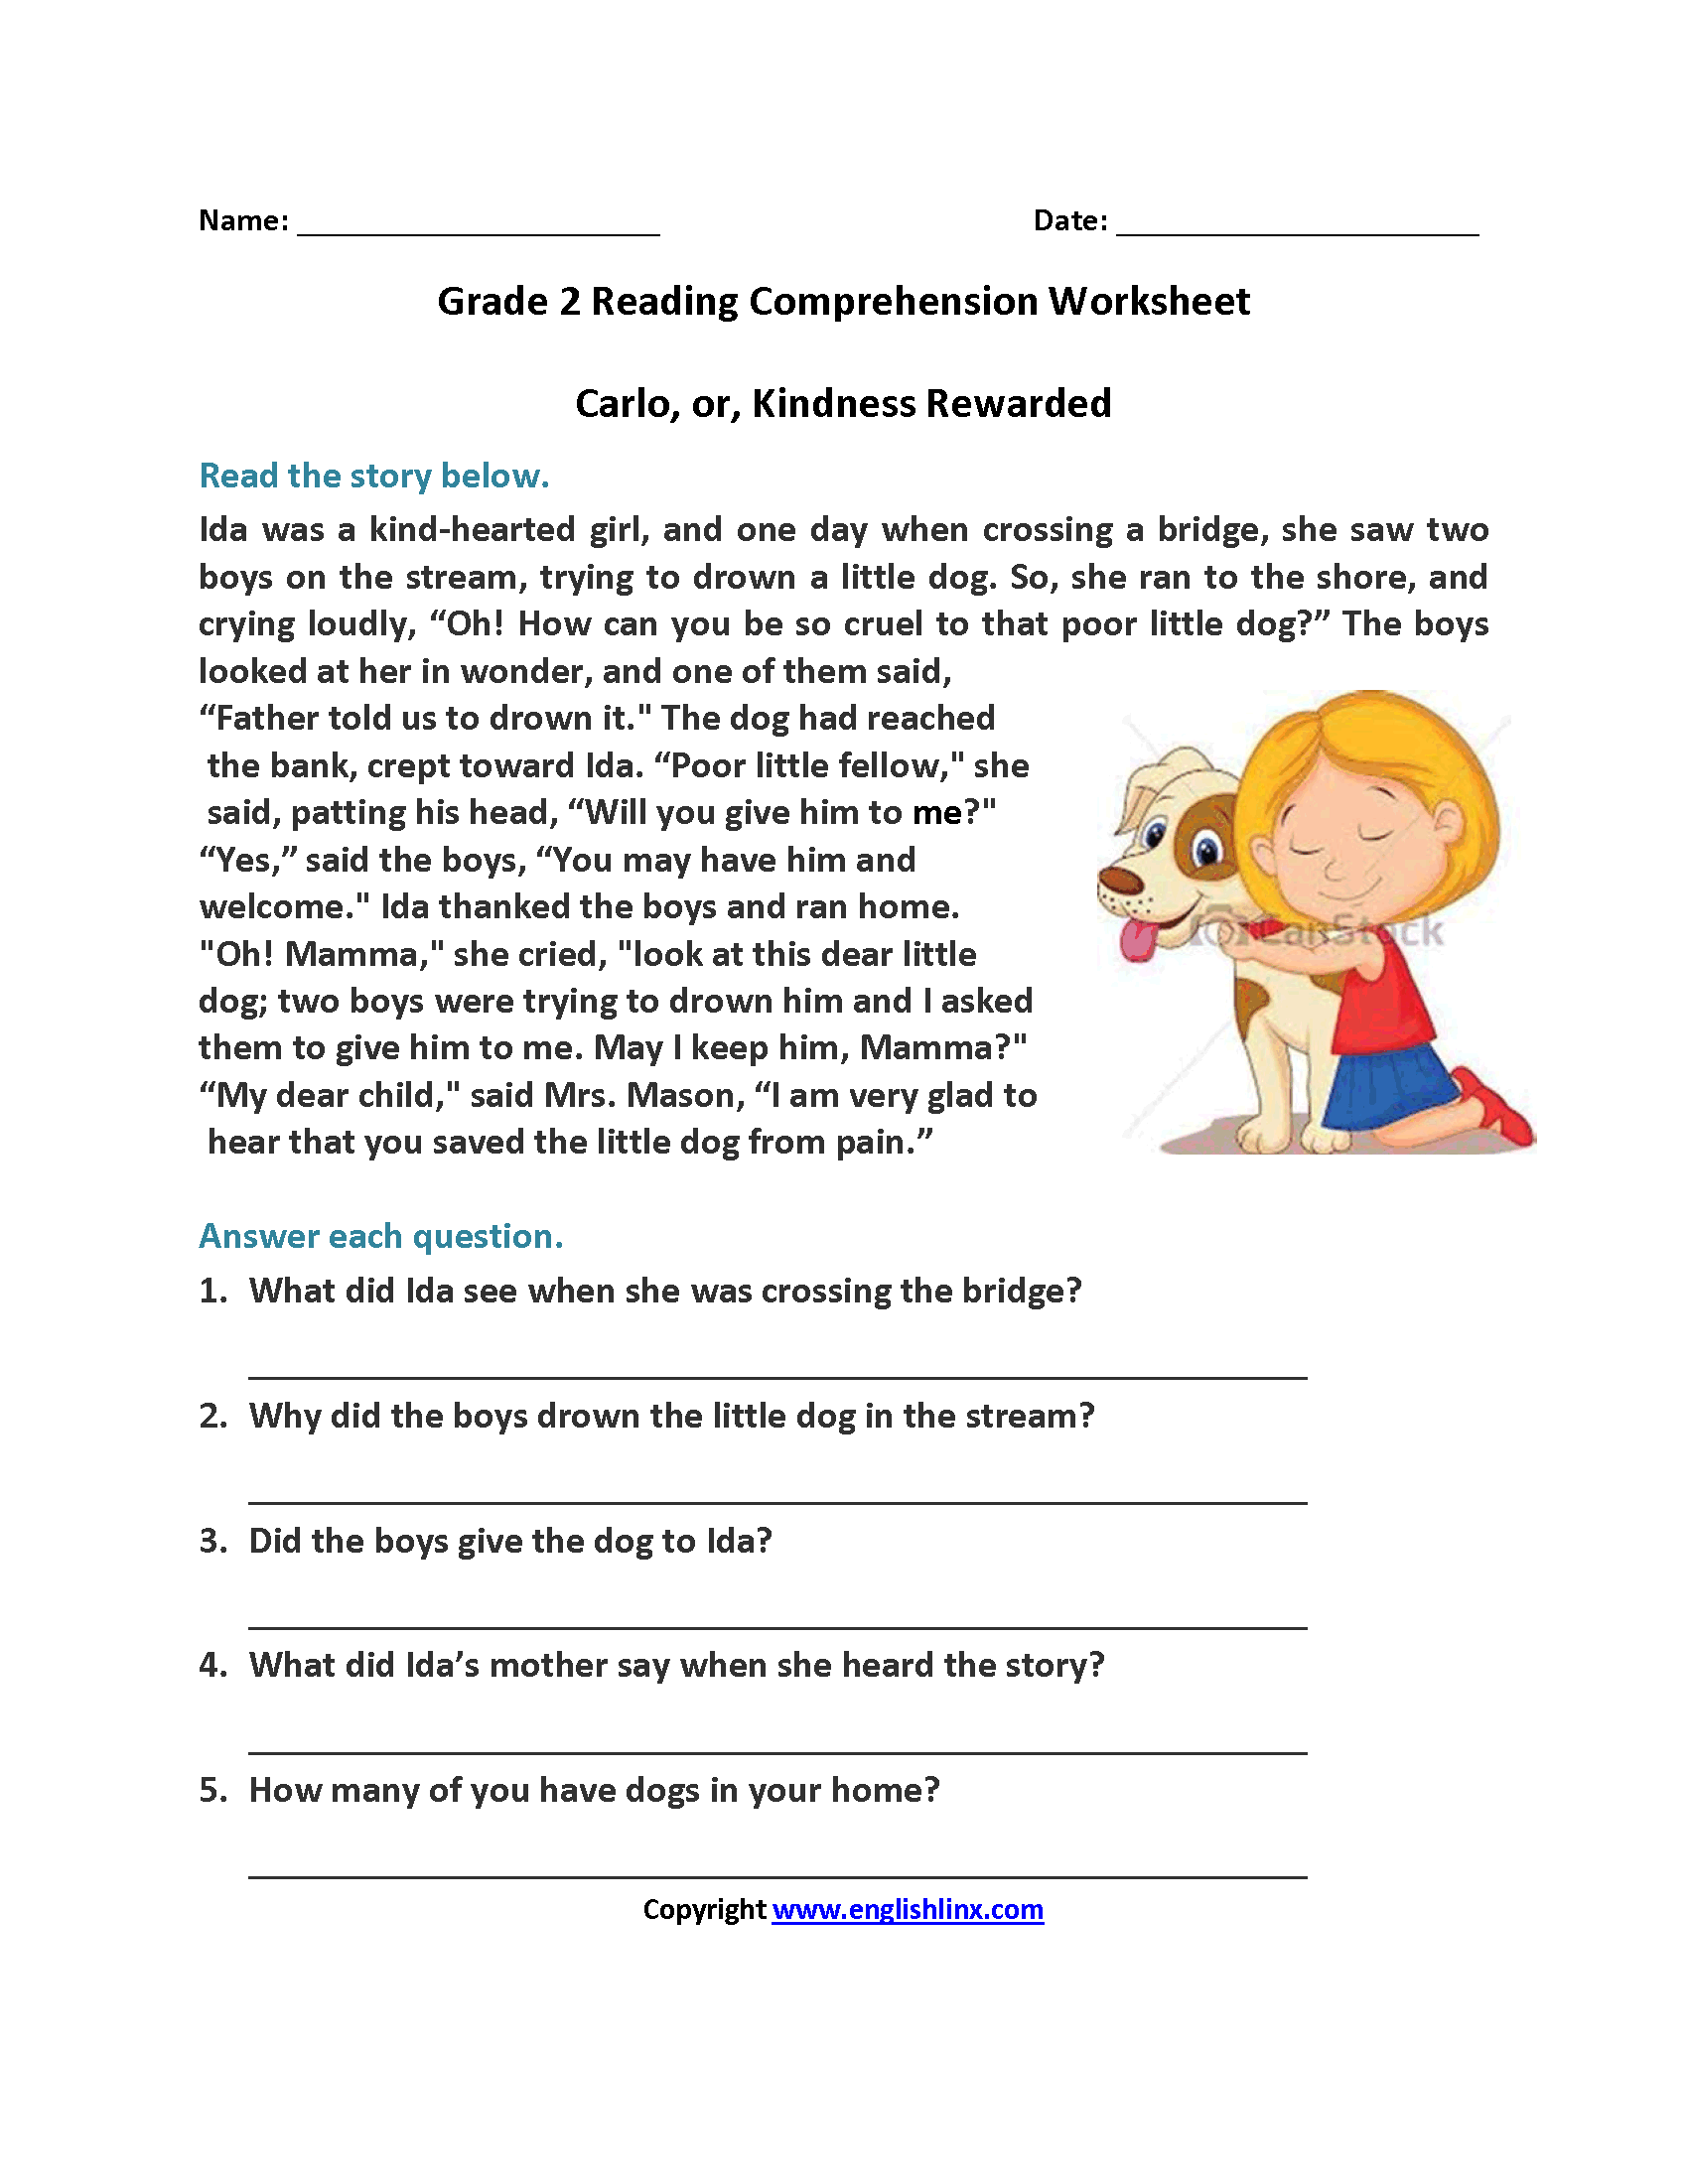 Worksheets Second Grade Reading Comprehension Worksheets Free reading worksheets second grade worksheets